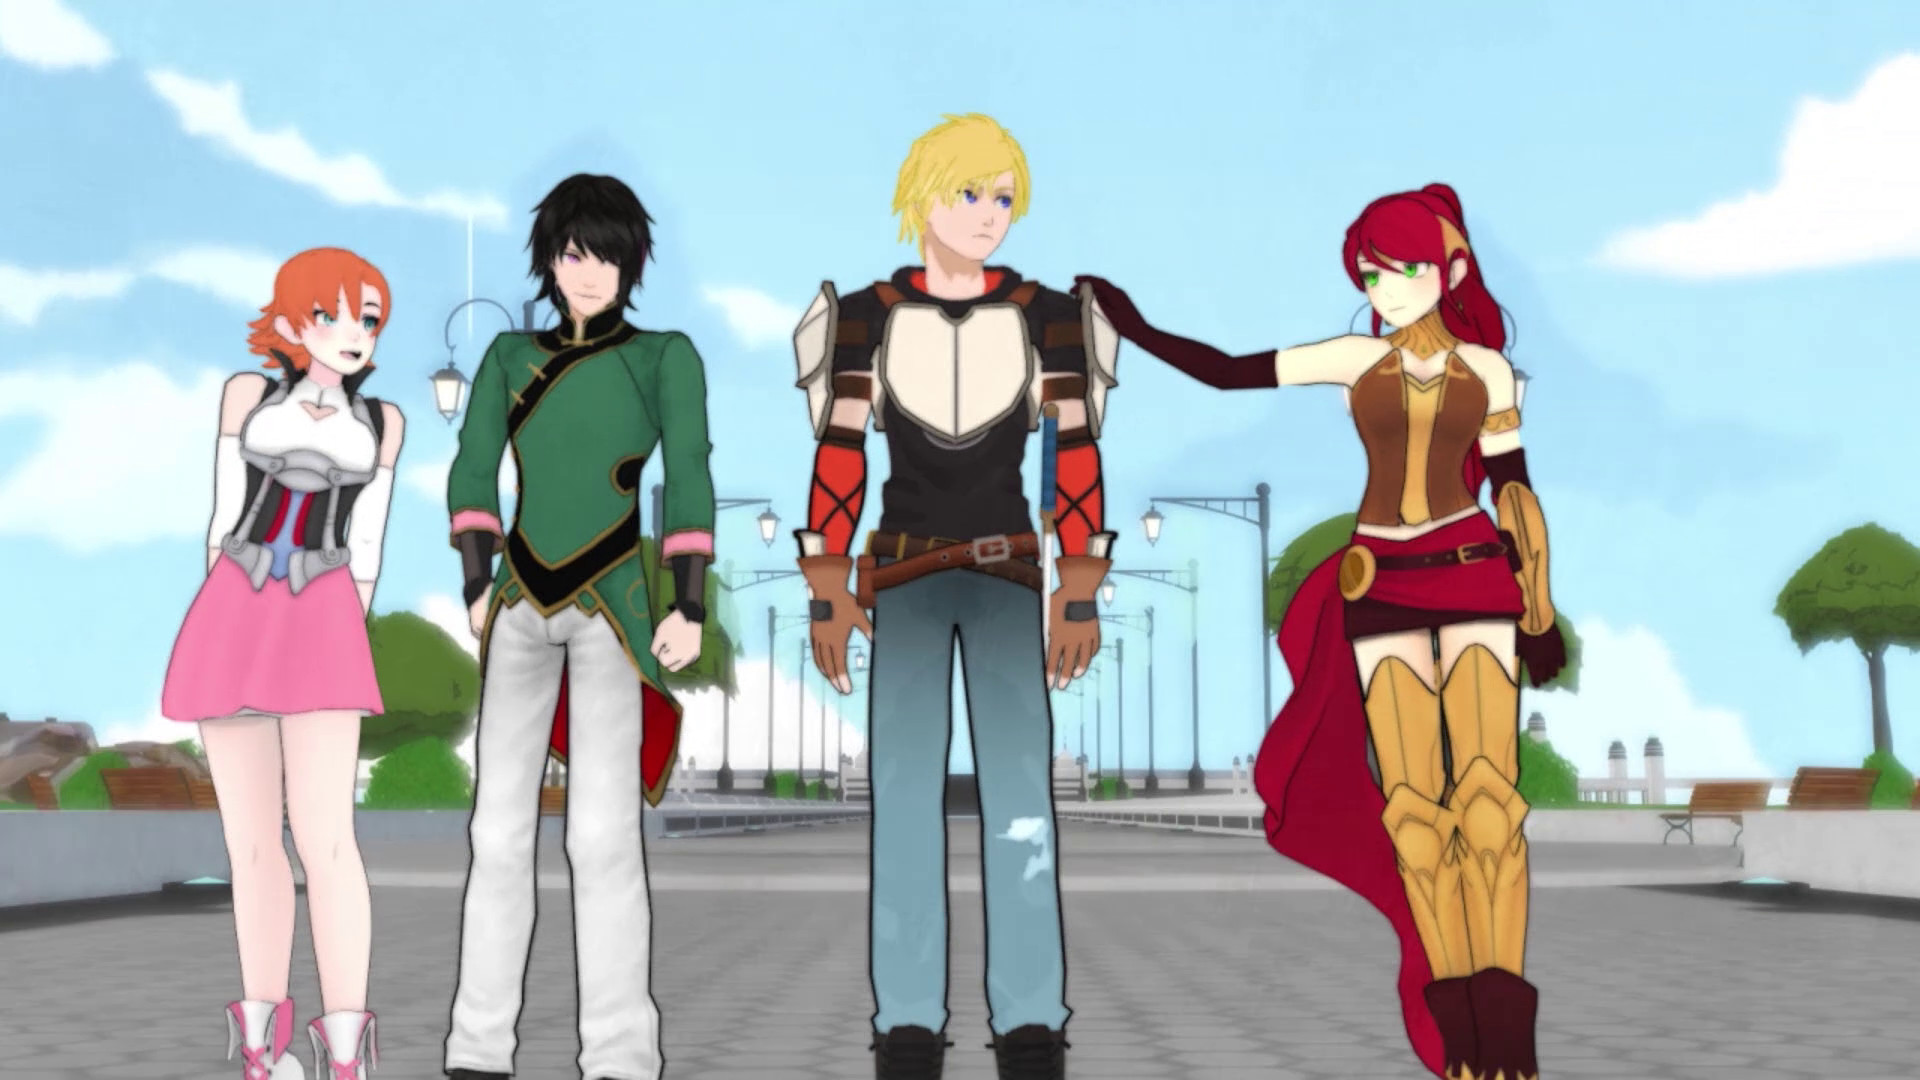 1920x1080 Image - 1102 The Shining Beacon 00633.png | RWBY Wiki | FANDOM powered by  Wikia